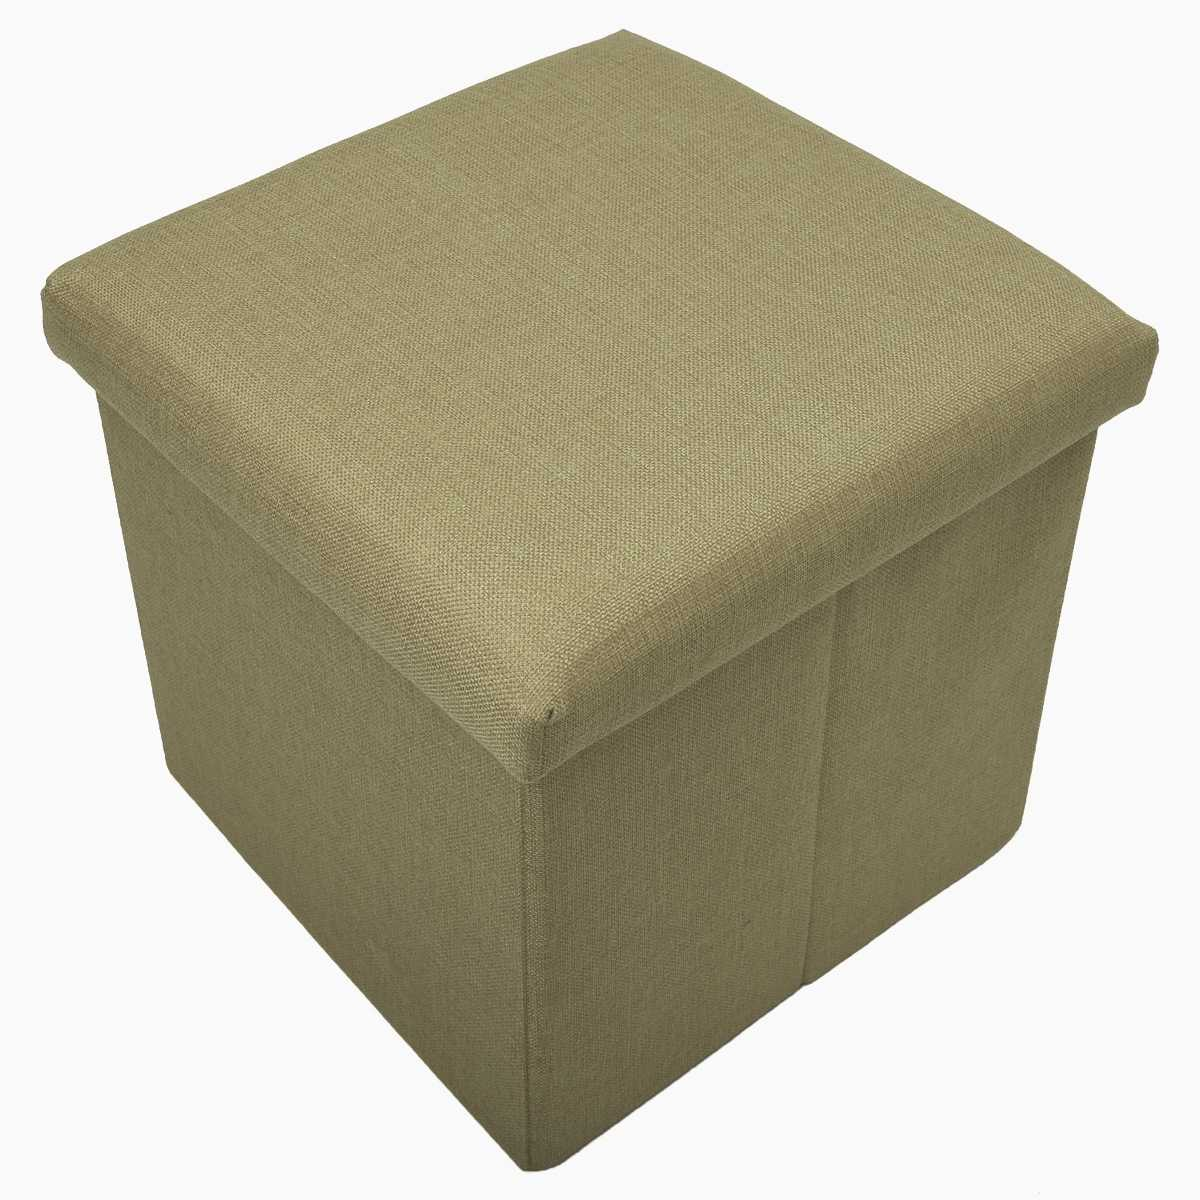 Multifunction Folding Storage Stool Chairs Lounge Shoes bench Footstool Storage Box Organizer Home Decoration Ottomans Furniture